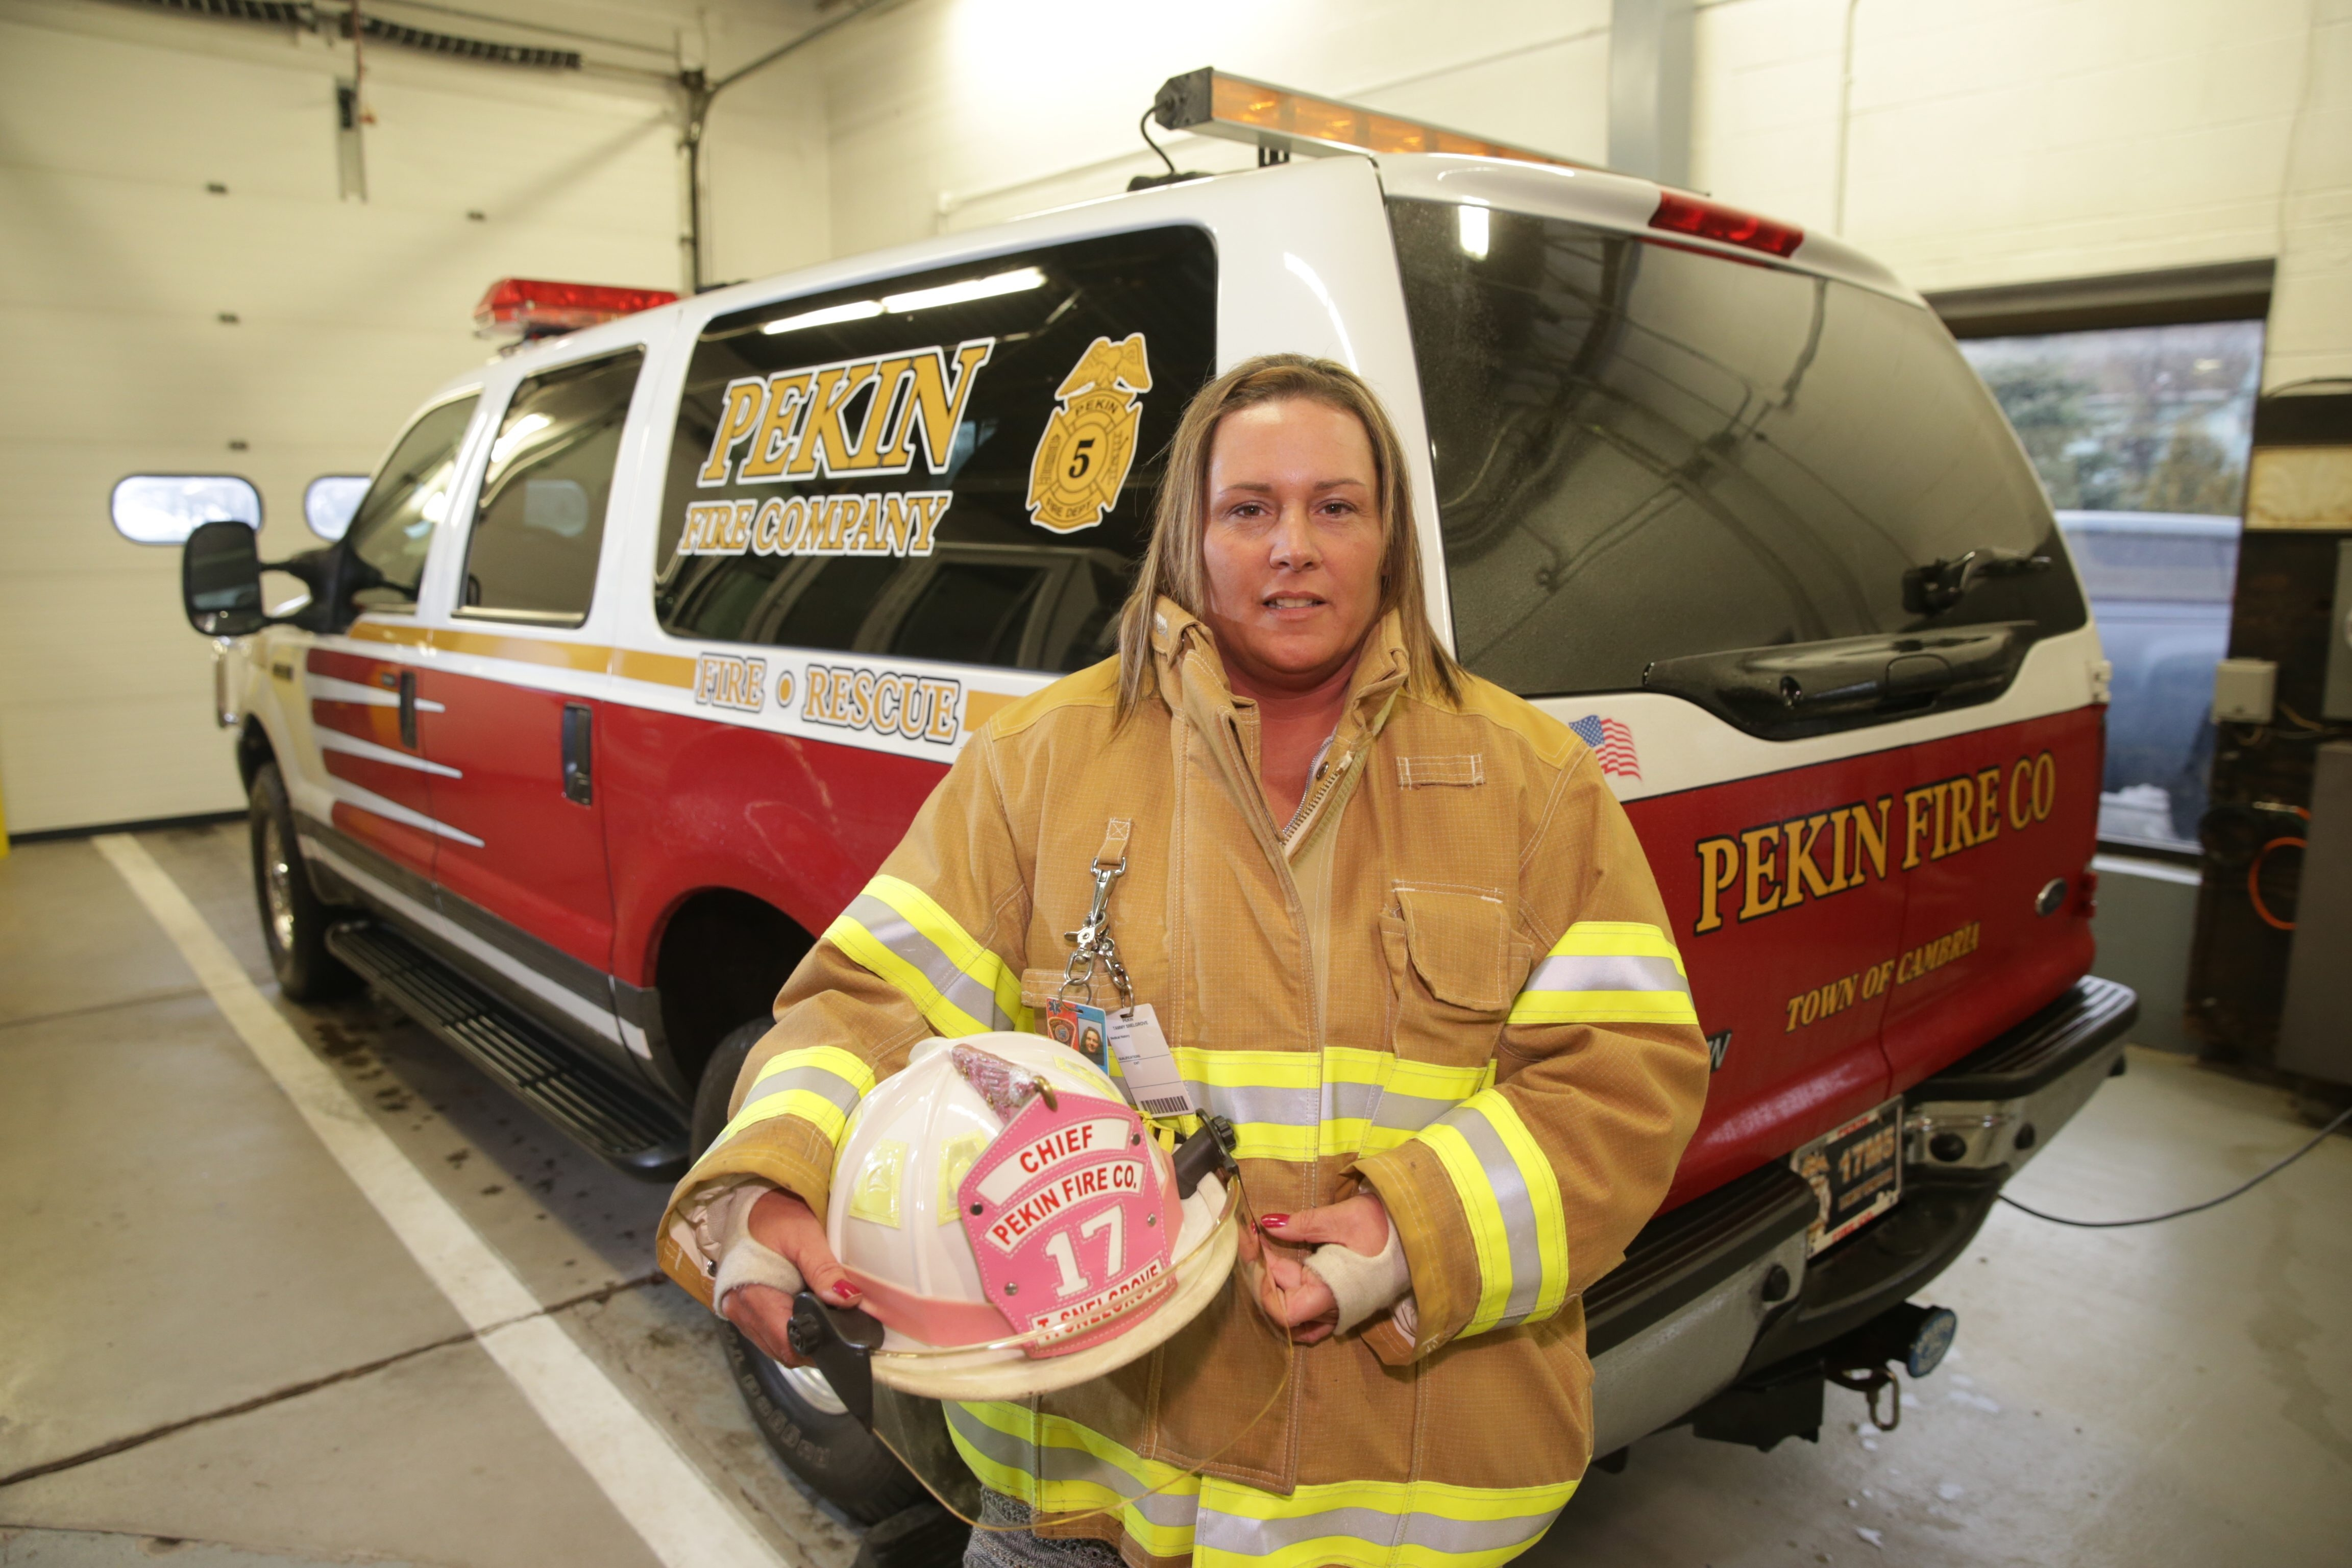 Pekin Fire Company Chief Tammy Snelgrove followed in her father's footsteps when she joined the ranks in 2005. The 44-year-old mother of two is an administrative assistant at Orleans-Niagara BOCES.